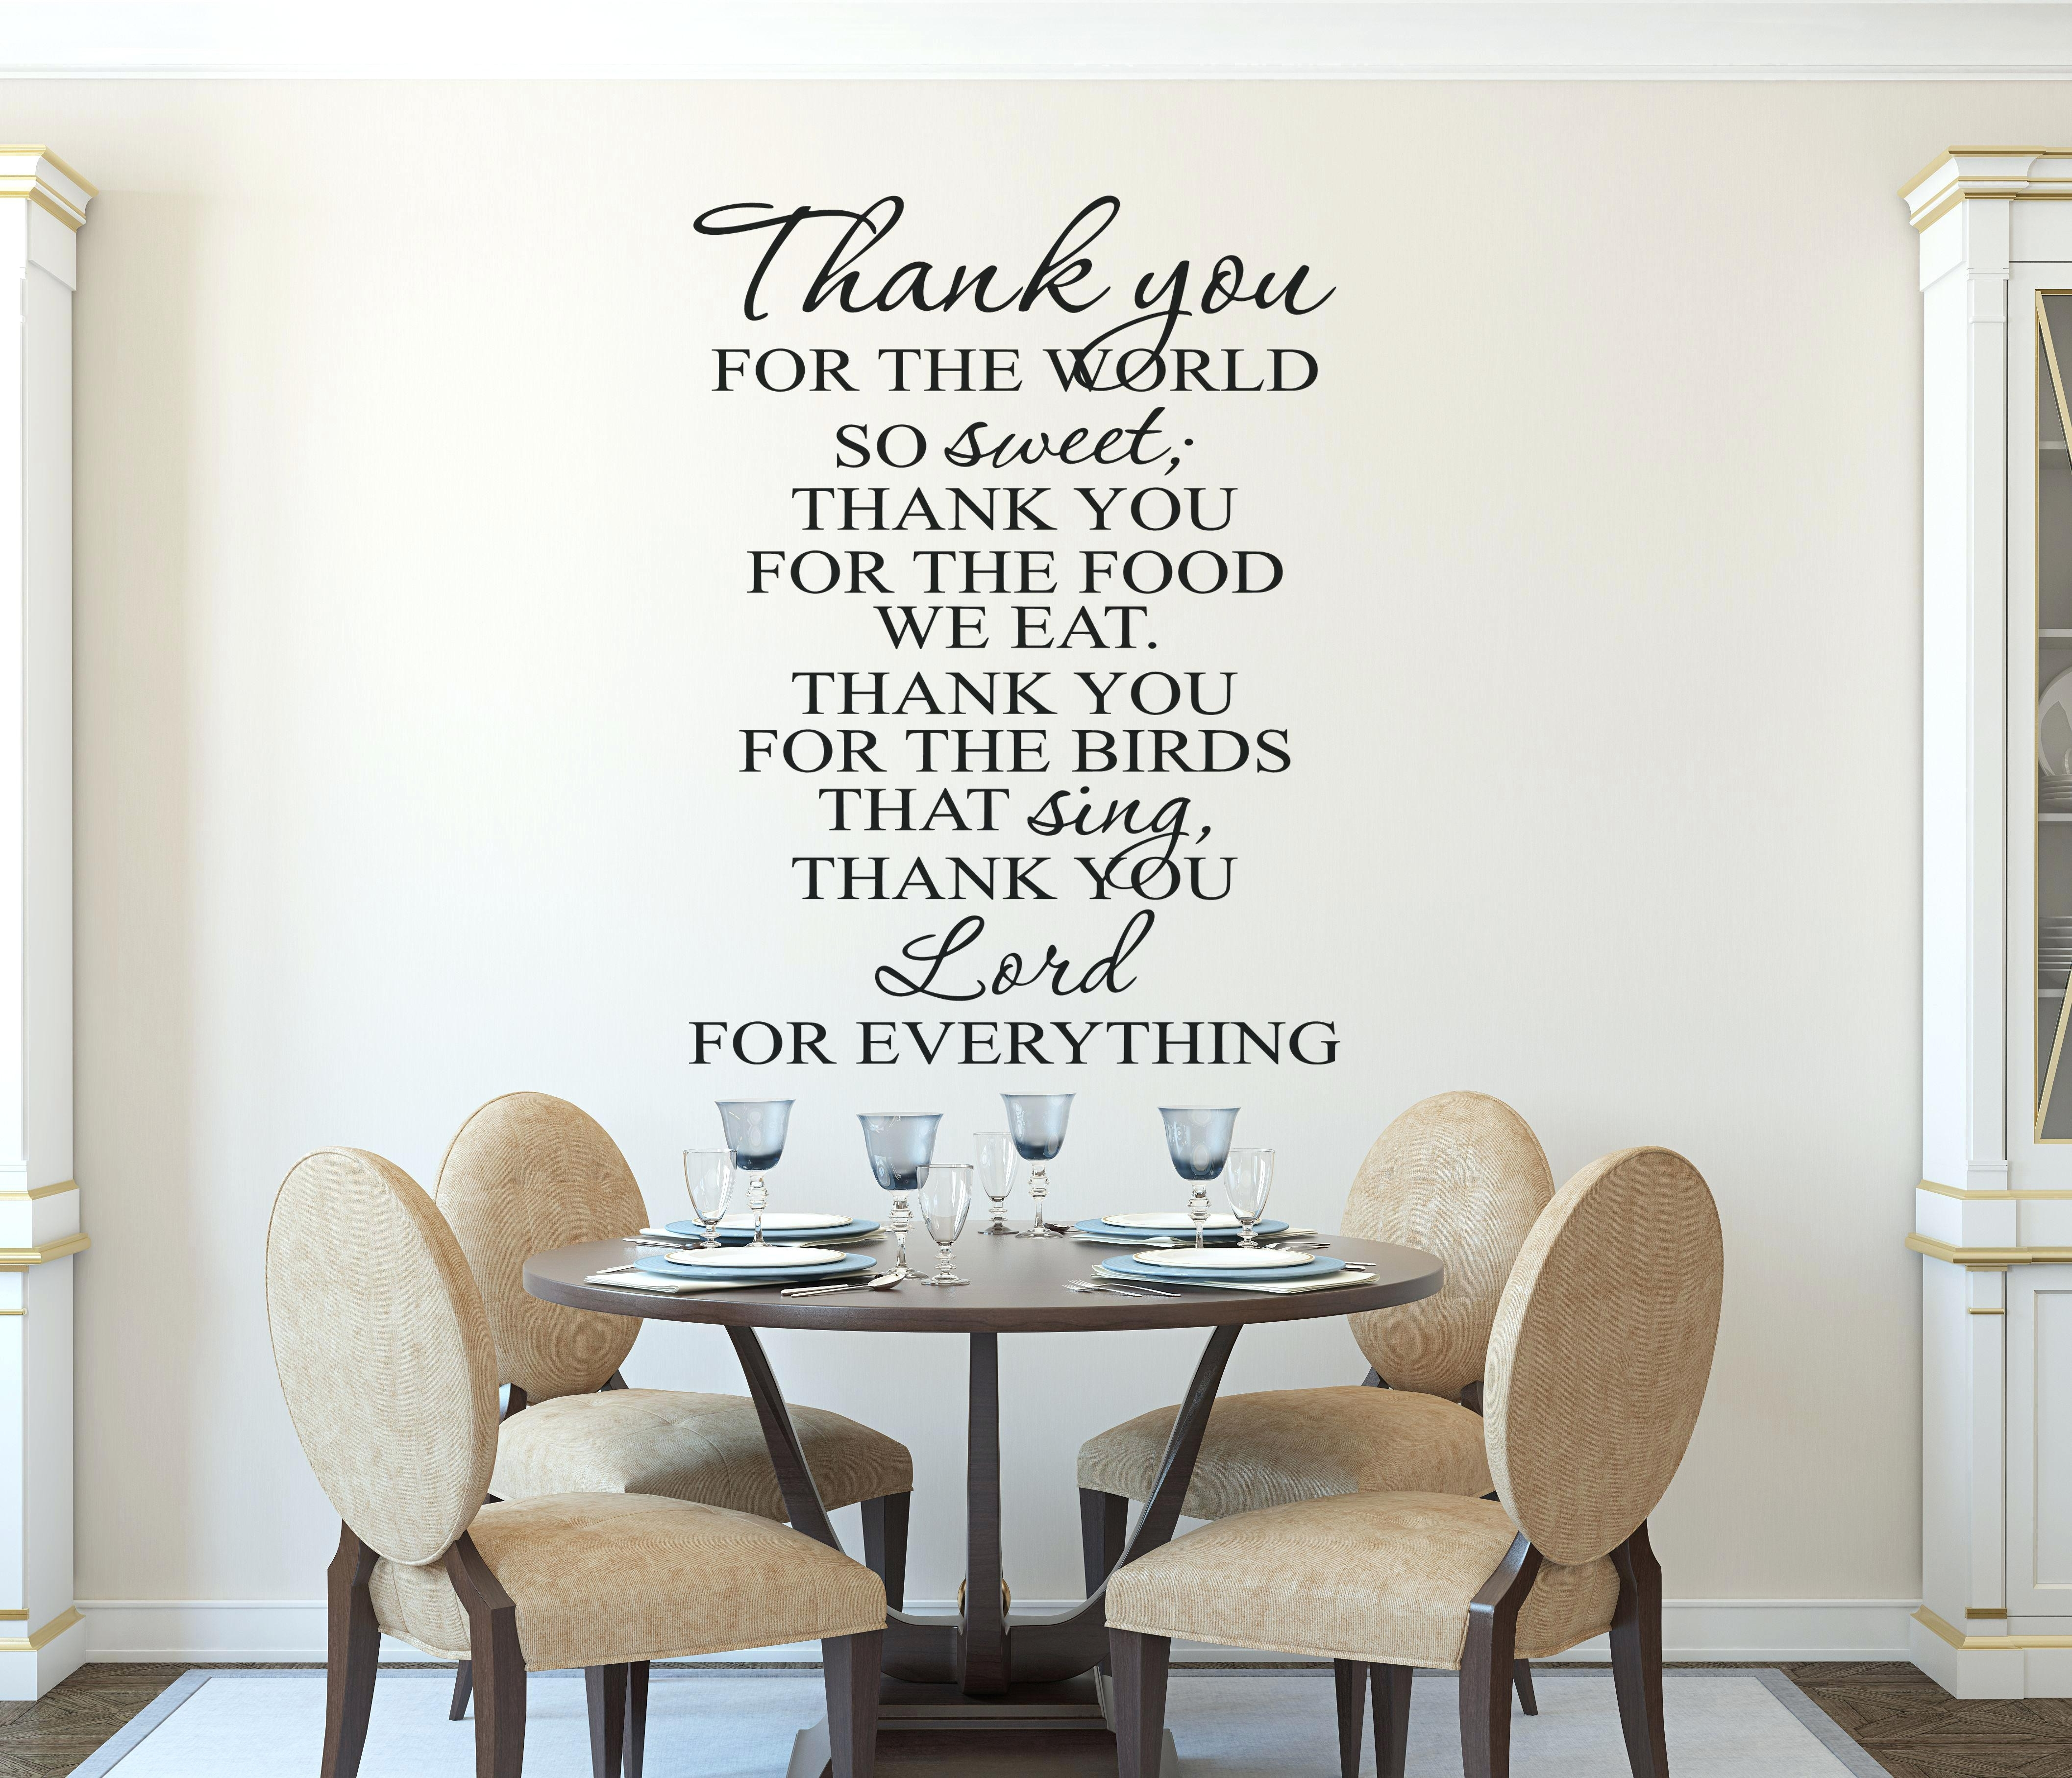 Excellent Idea Word Art For Walls Tree Wall Stickers Dezign With A Z Inside Most Popular Art For Walls (View 6 of 20)